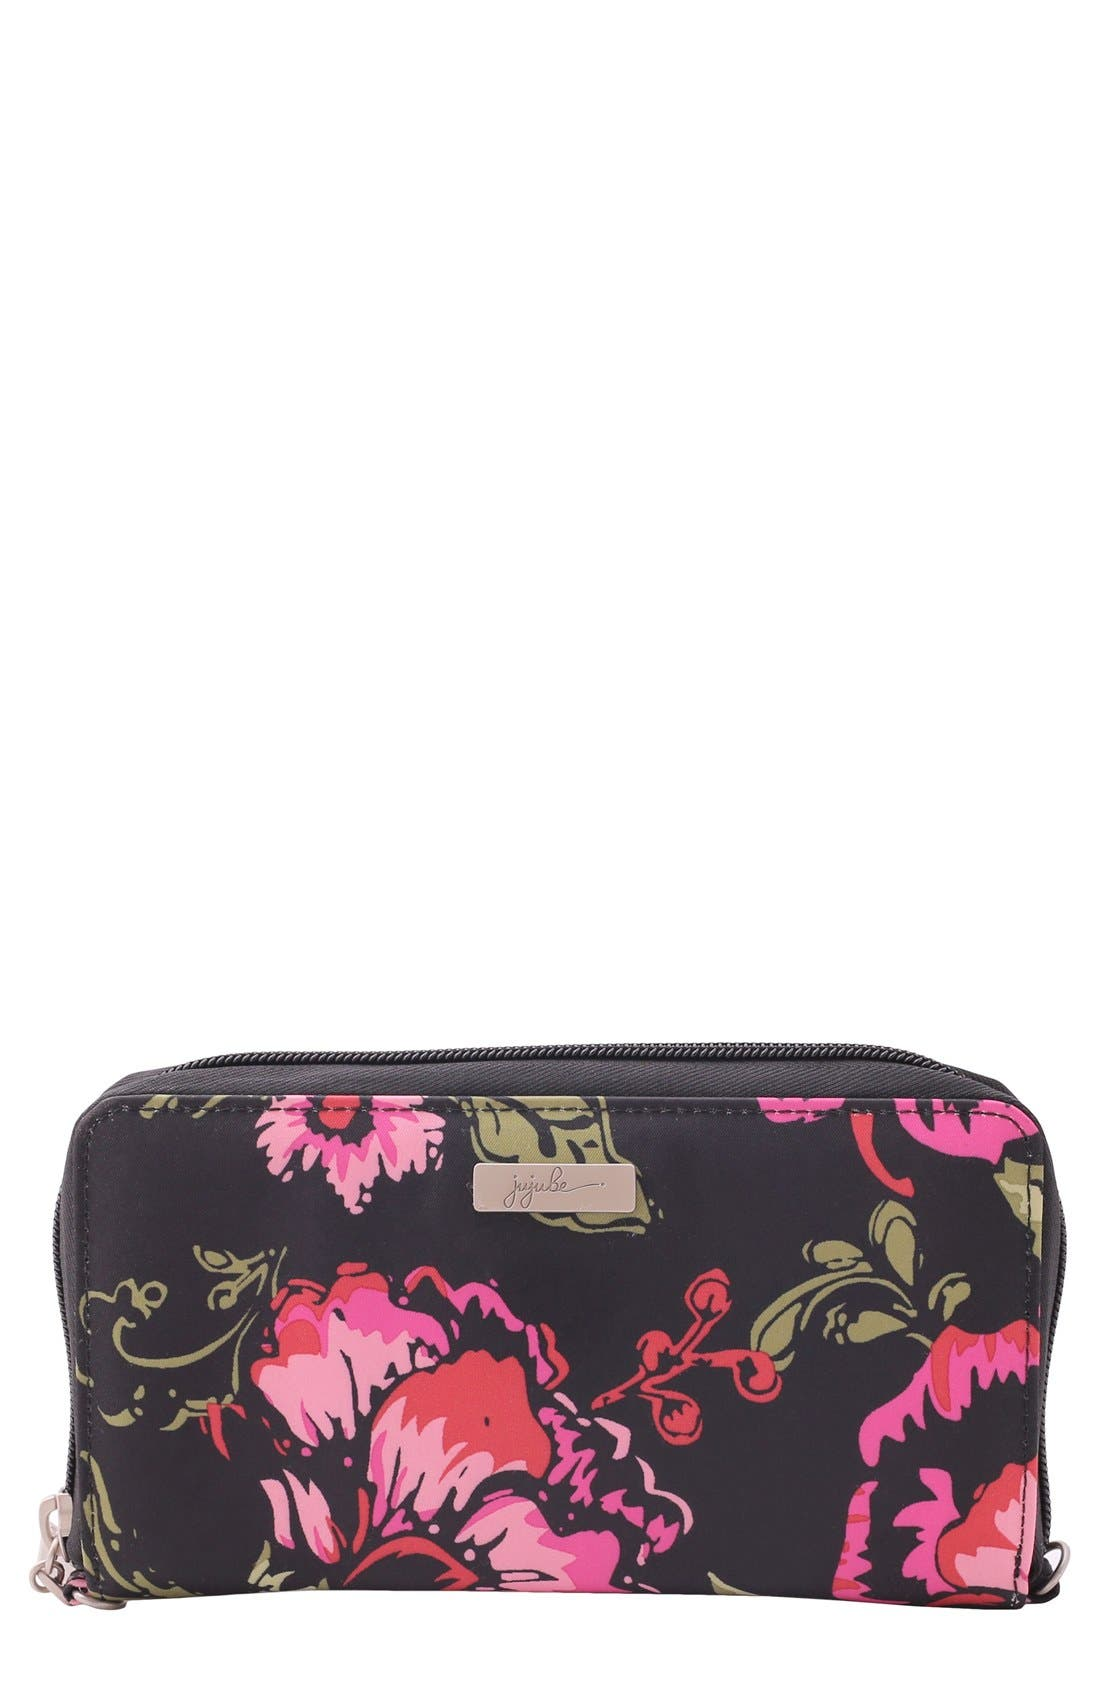 Be Spendy Clutch Wallet,                             Main thumbnail 1, color,                             Blooming Romance